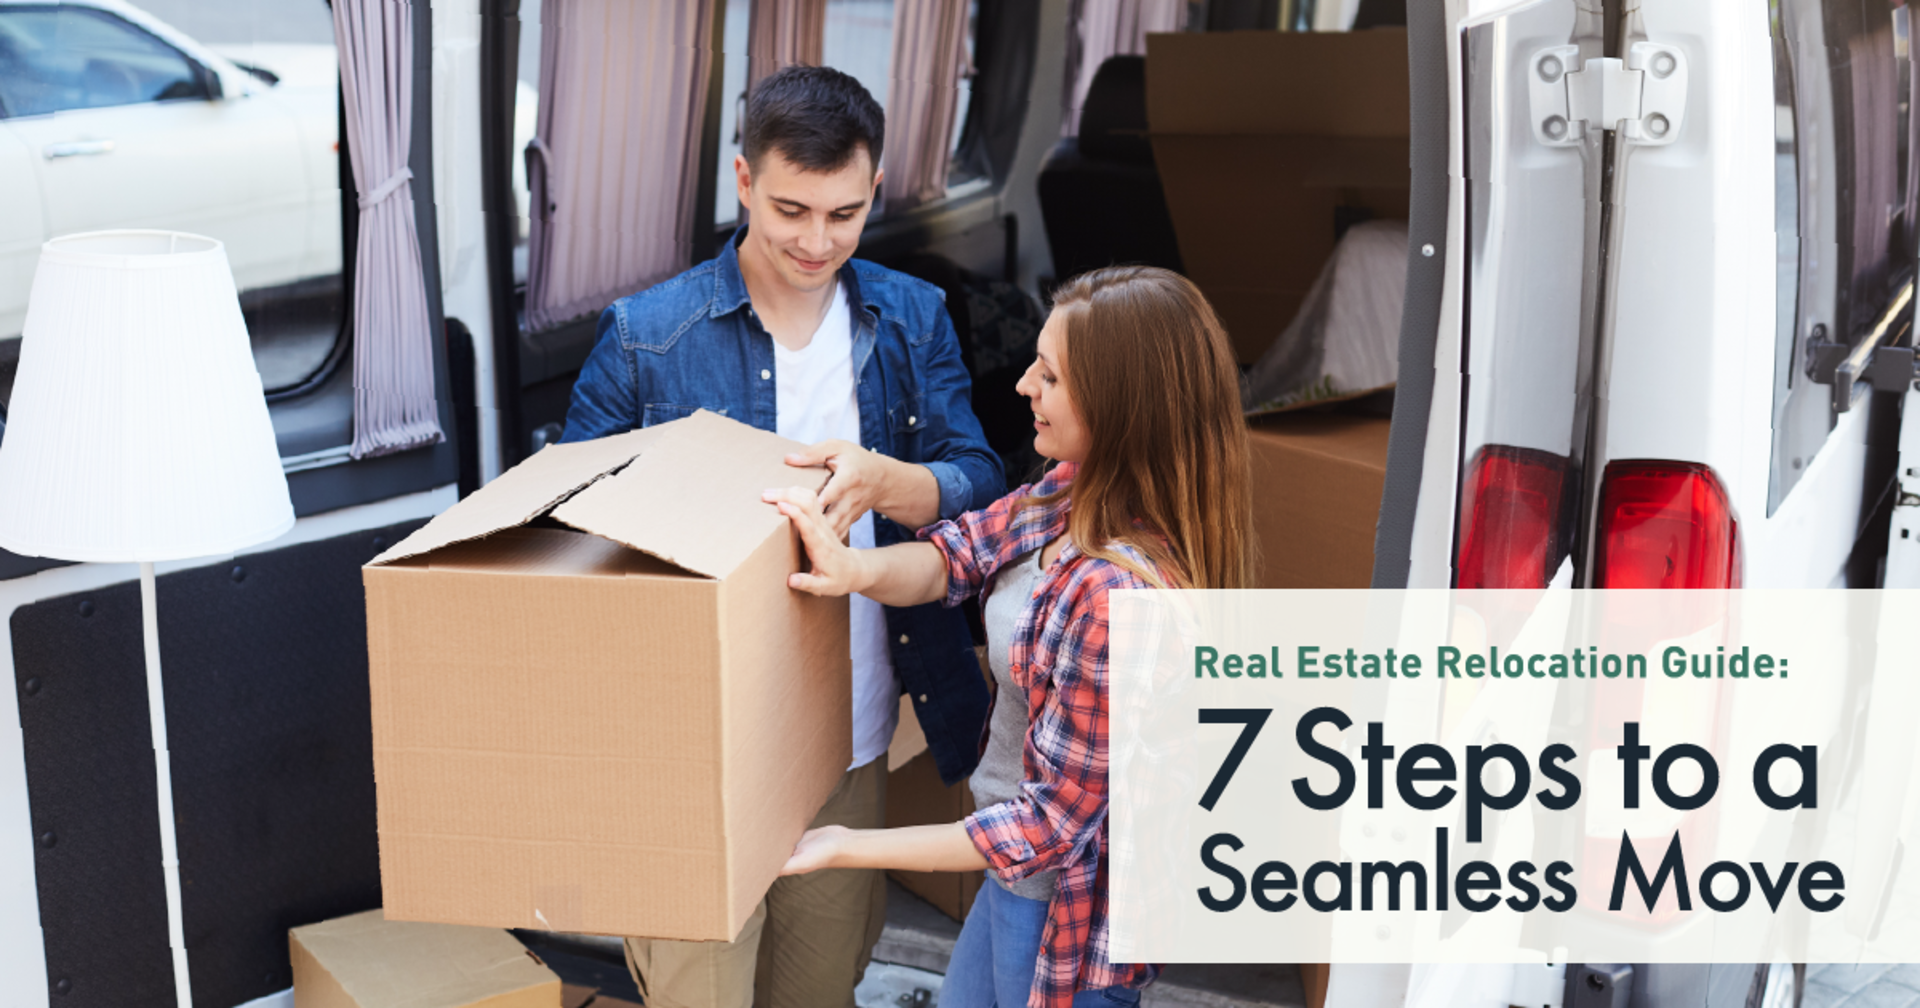 Real Estate Relocation Guide: 7 Steps to a Seamless Move